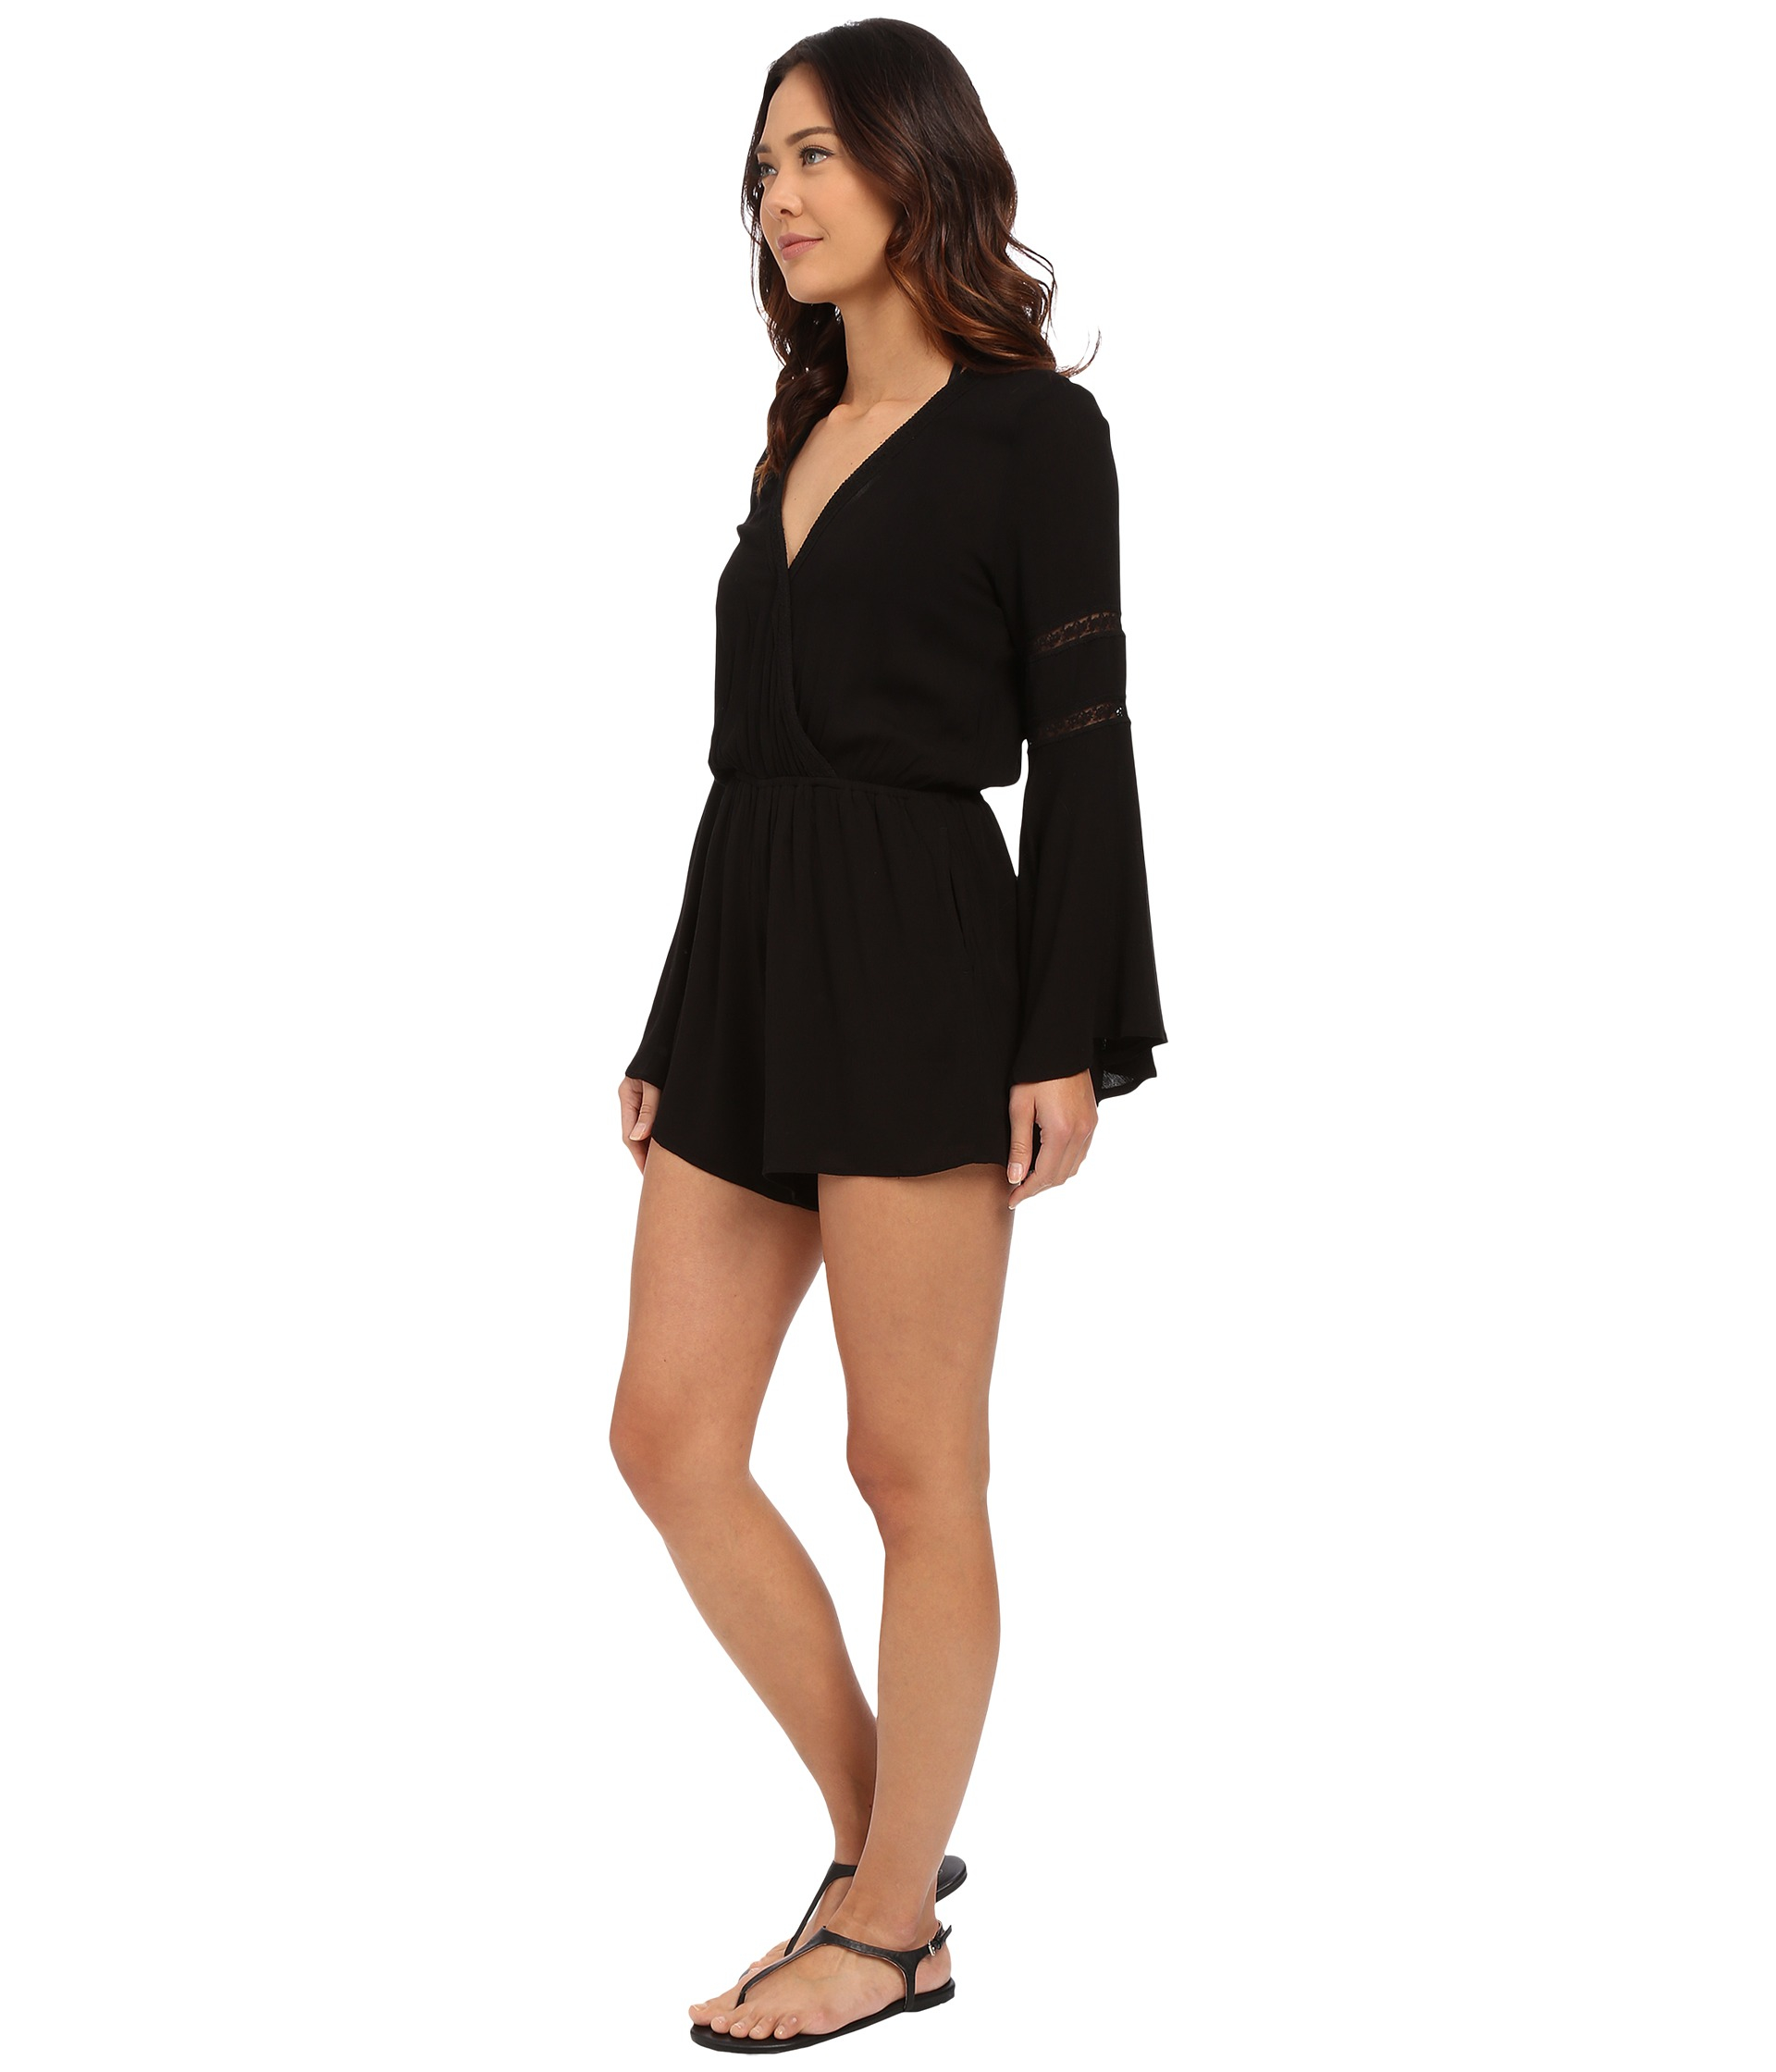 8b84c36f44f Lyst - L Space Lovestruck Romper Cover-up in Black